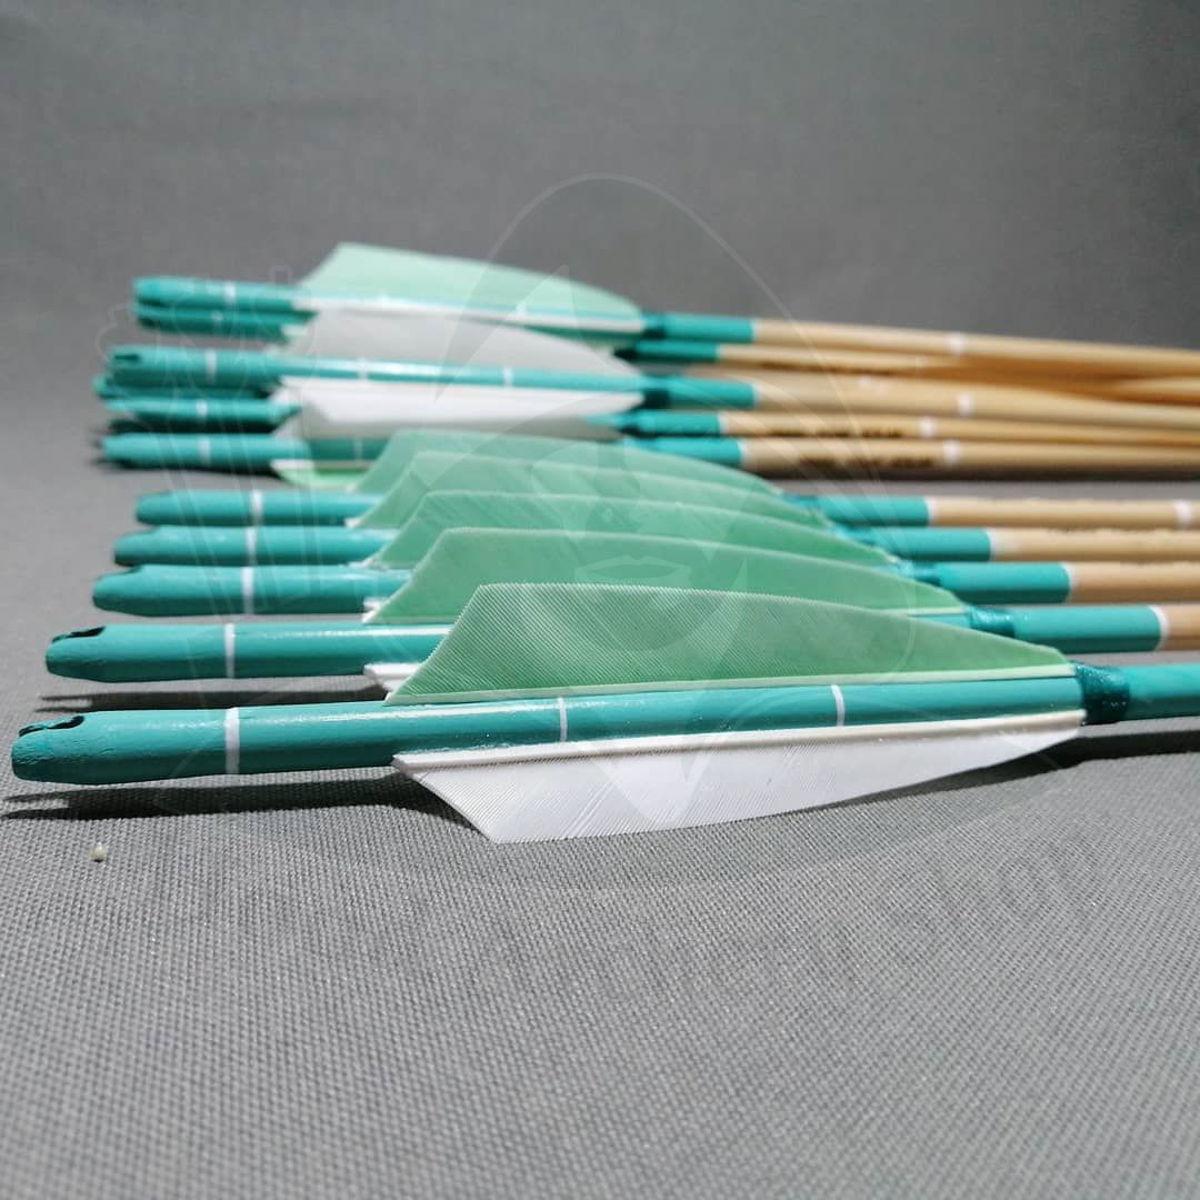 Wooden Barrelled Crested Arrows Archery Personalized Arrow For Recurve Bow Longbow Medieval Traditional Ottoman Hunting Shoot with Turquoise Turkey Feather. ürün görseli